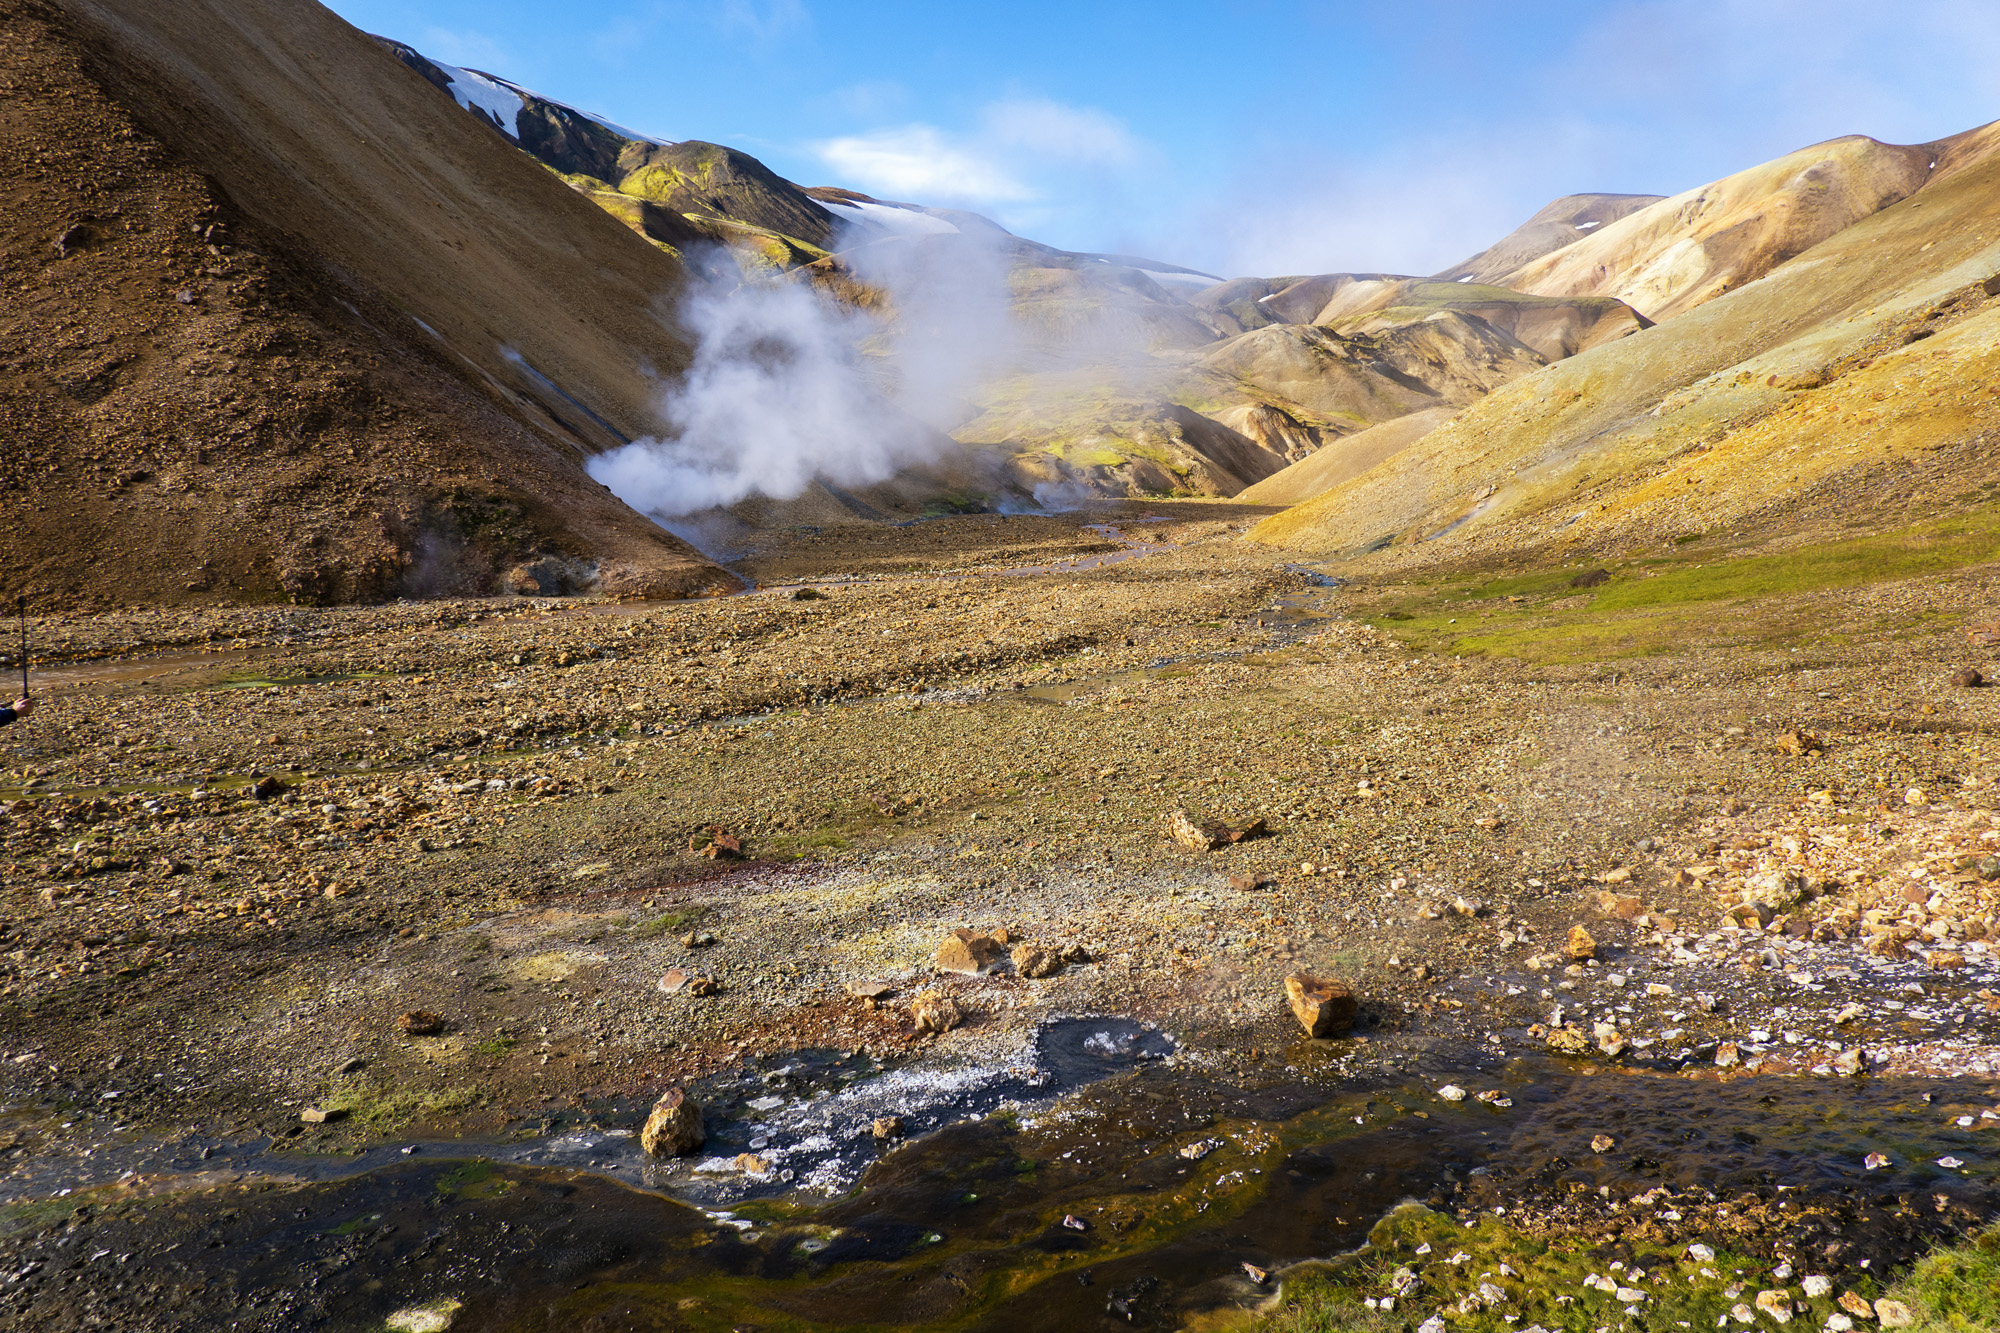 The wild Highlands are known for their colourful mountains and hot springs, especially in the Landmannalaugar area.